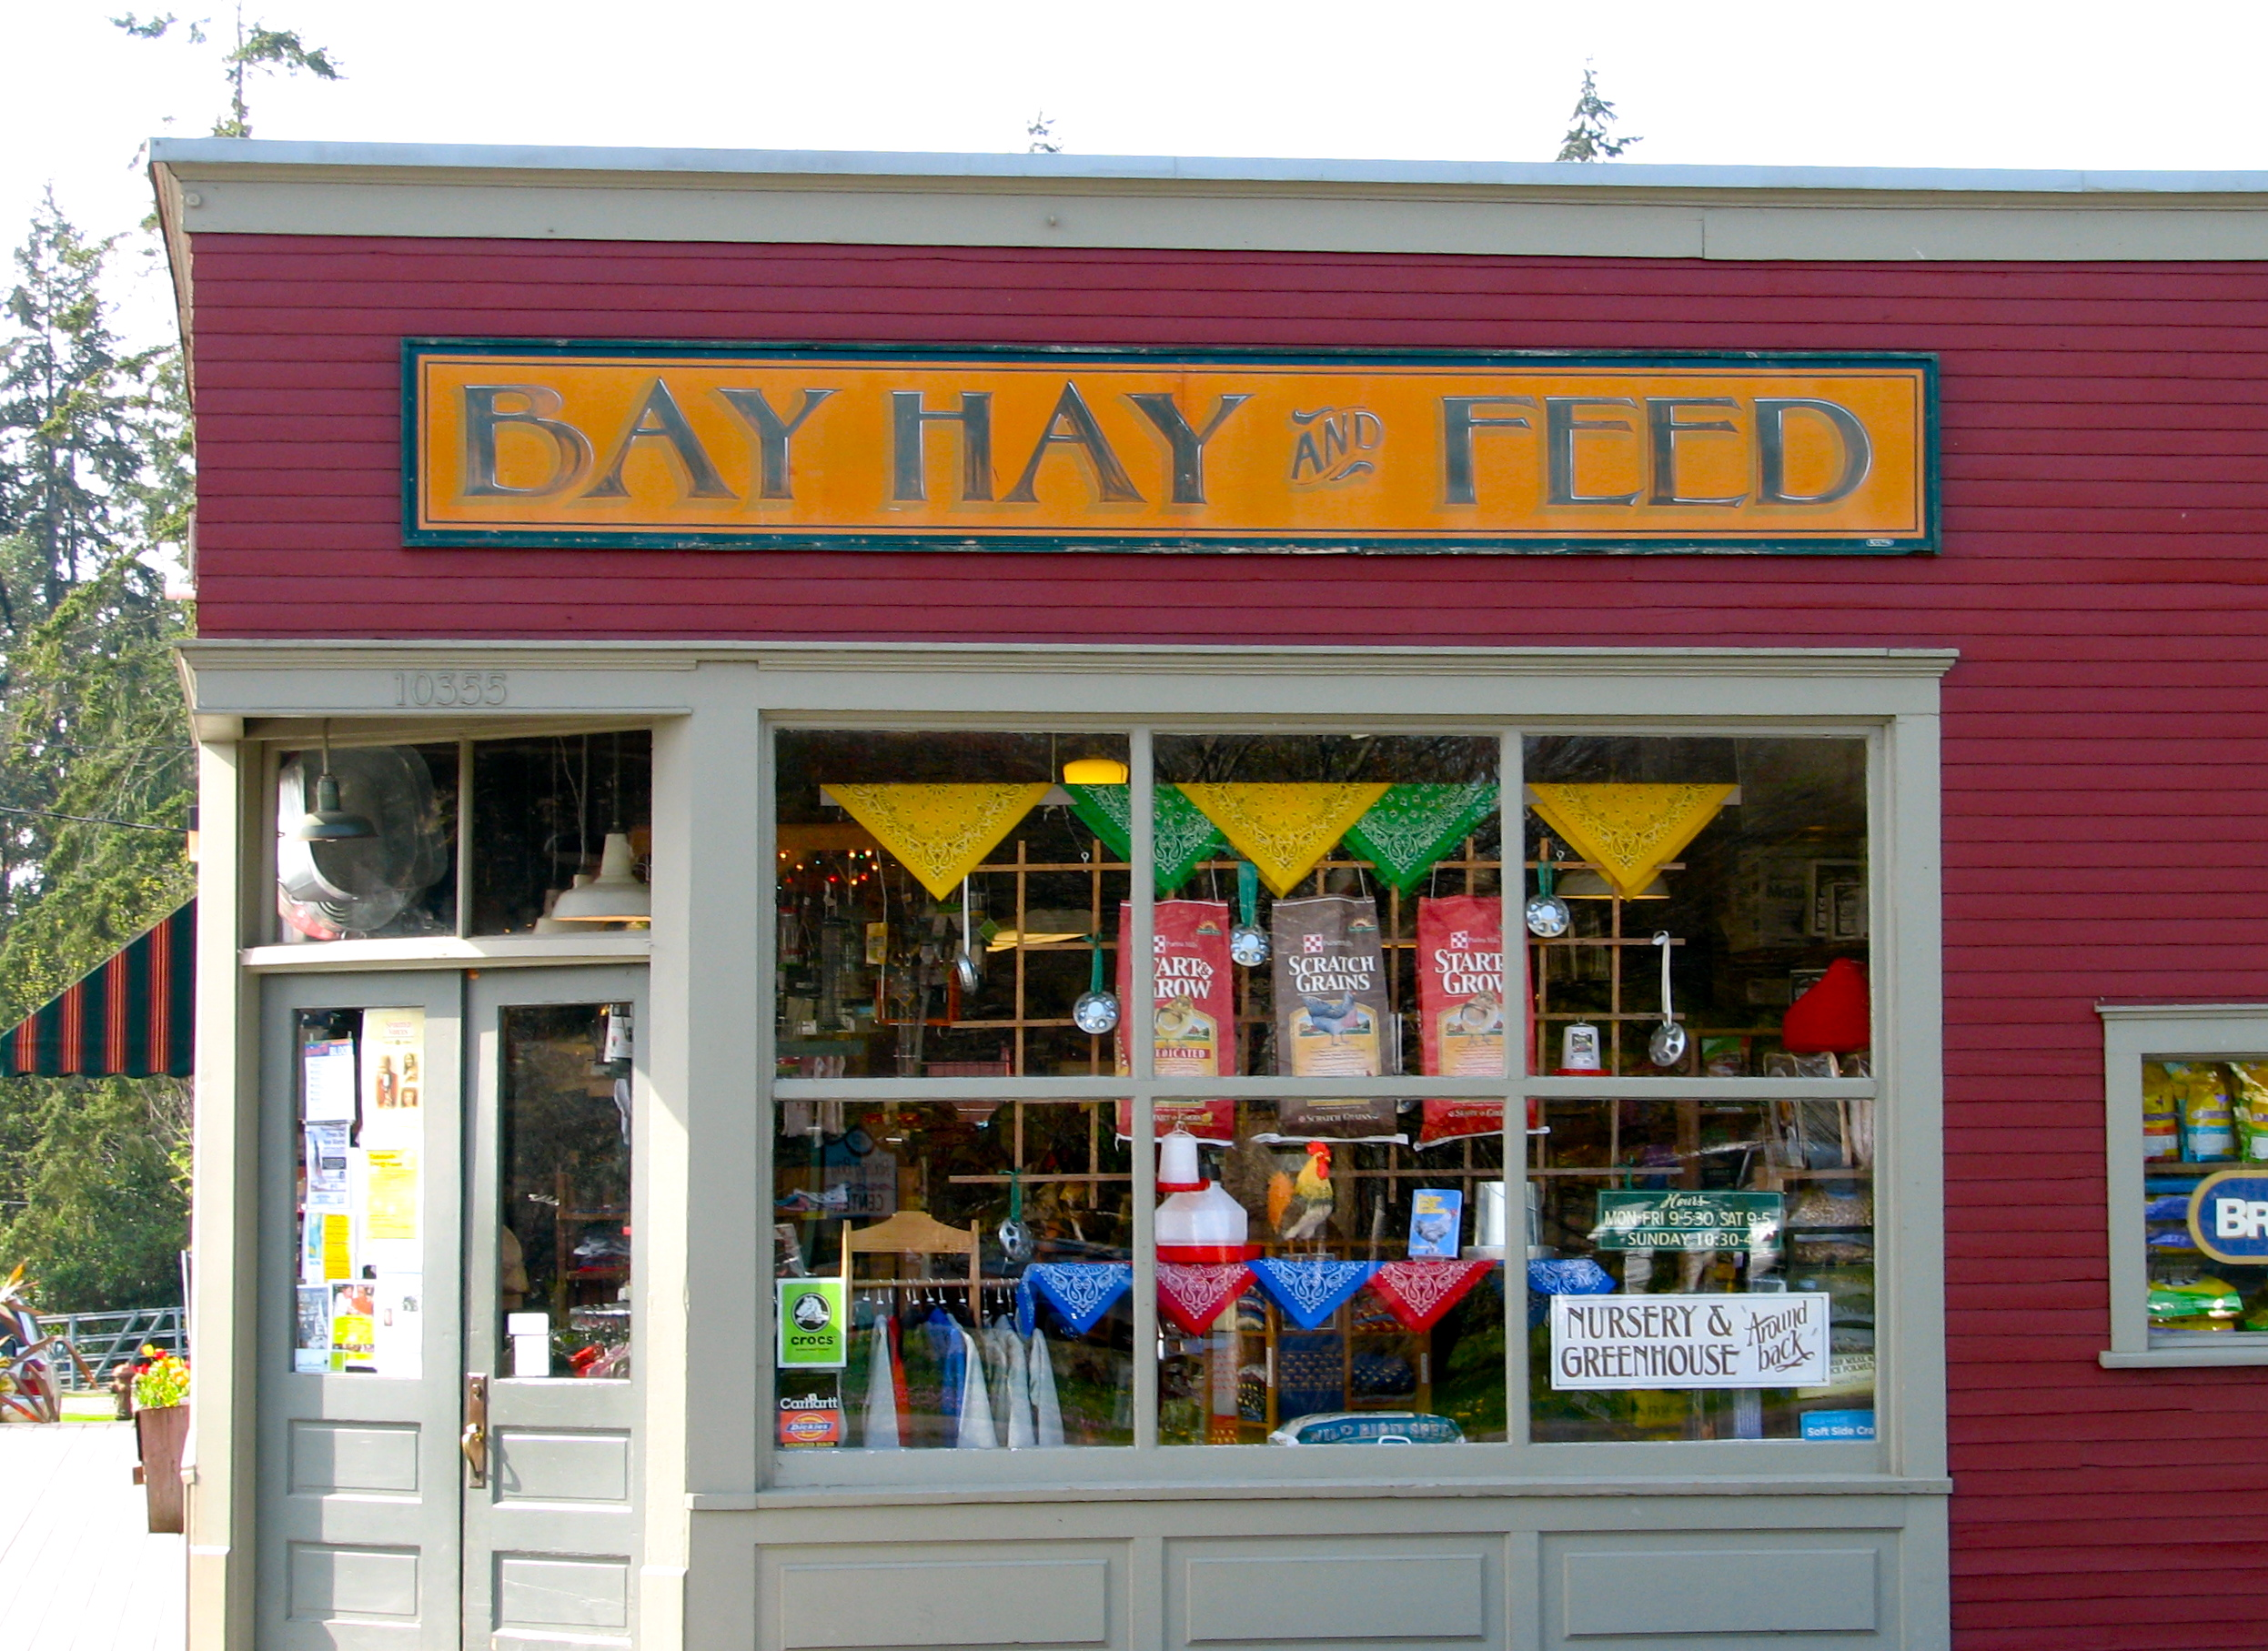 Bay Hay and Feed Store in Rolling Bay.